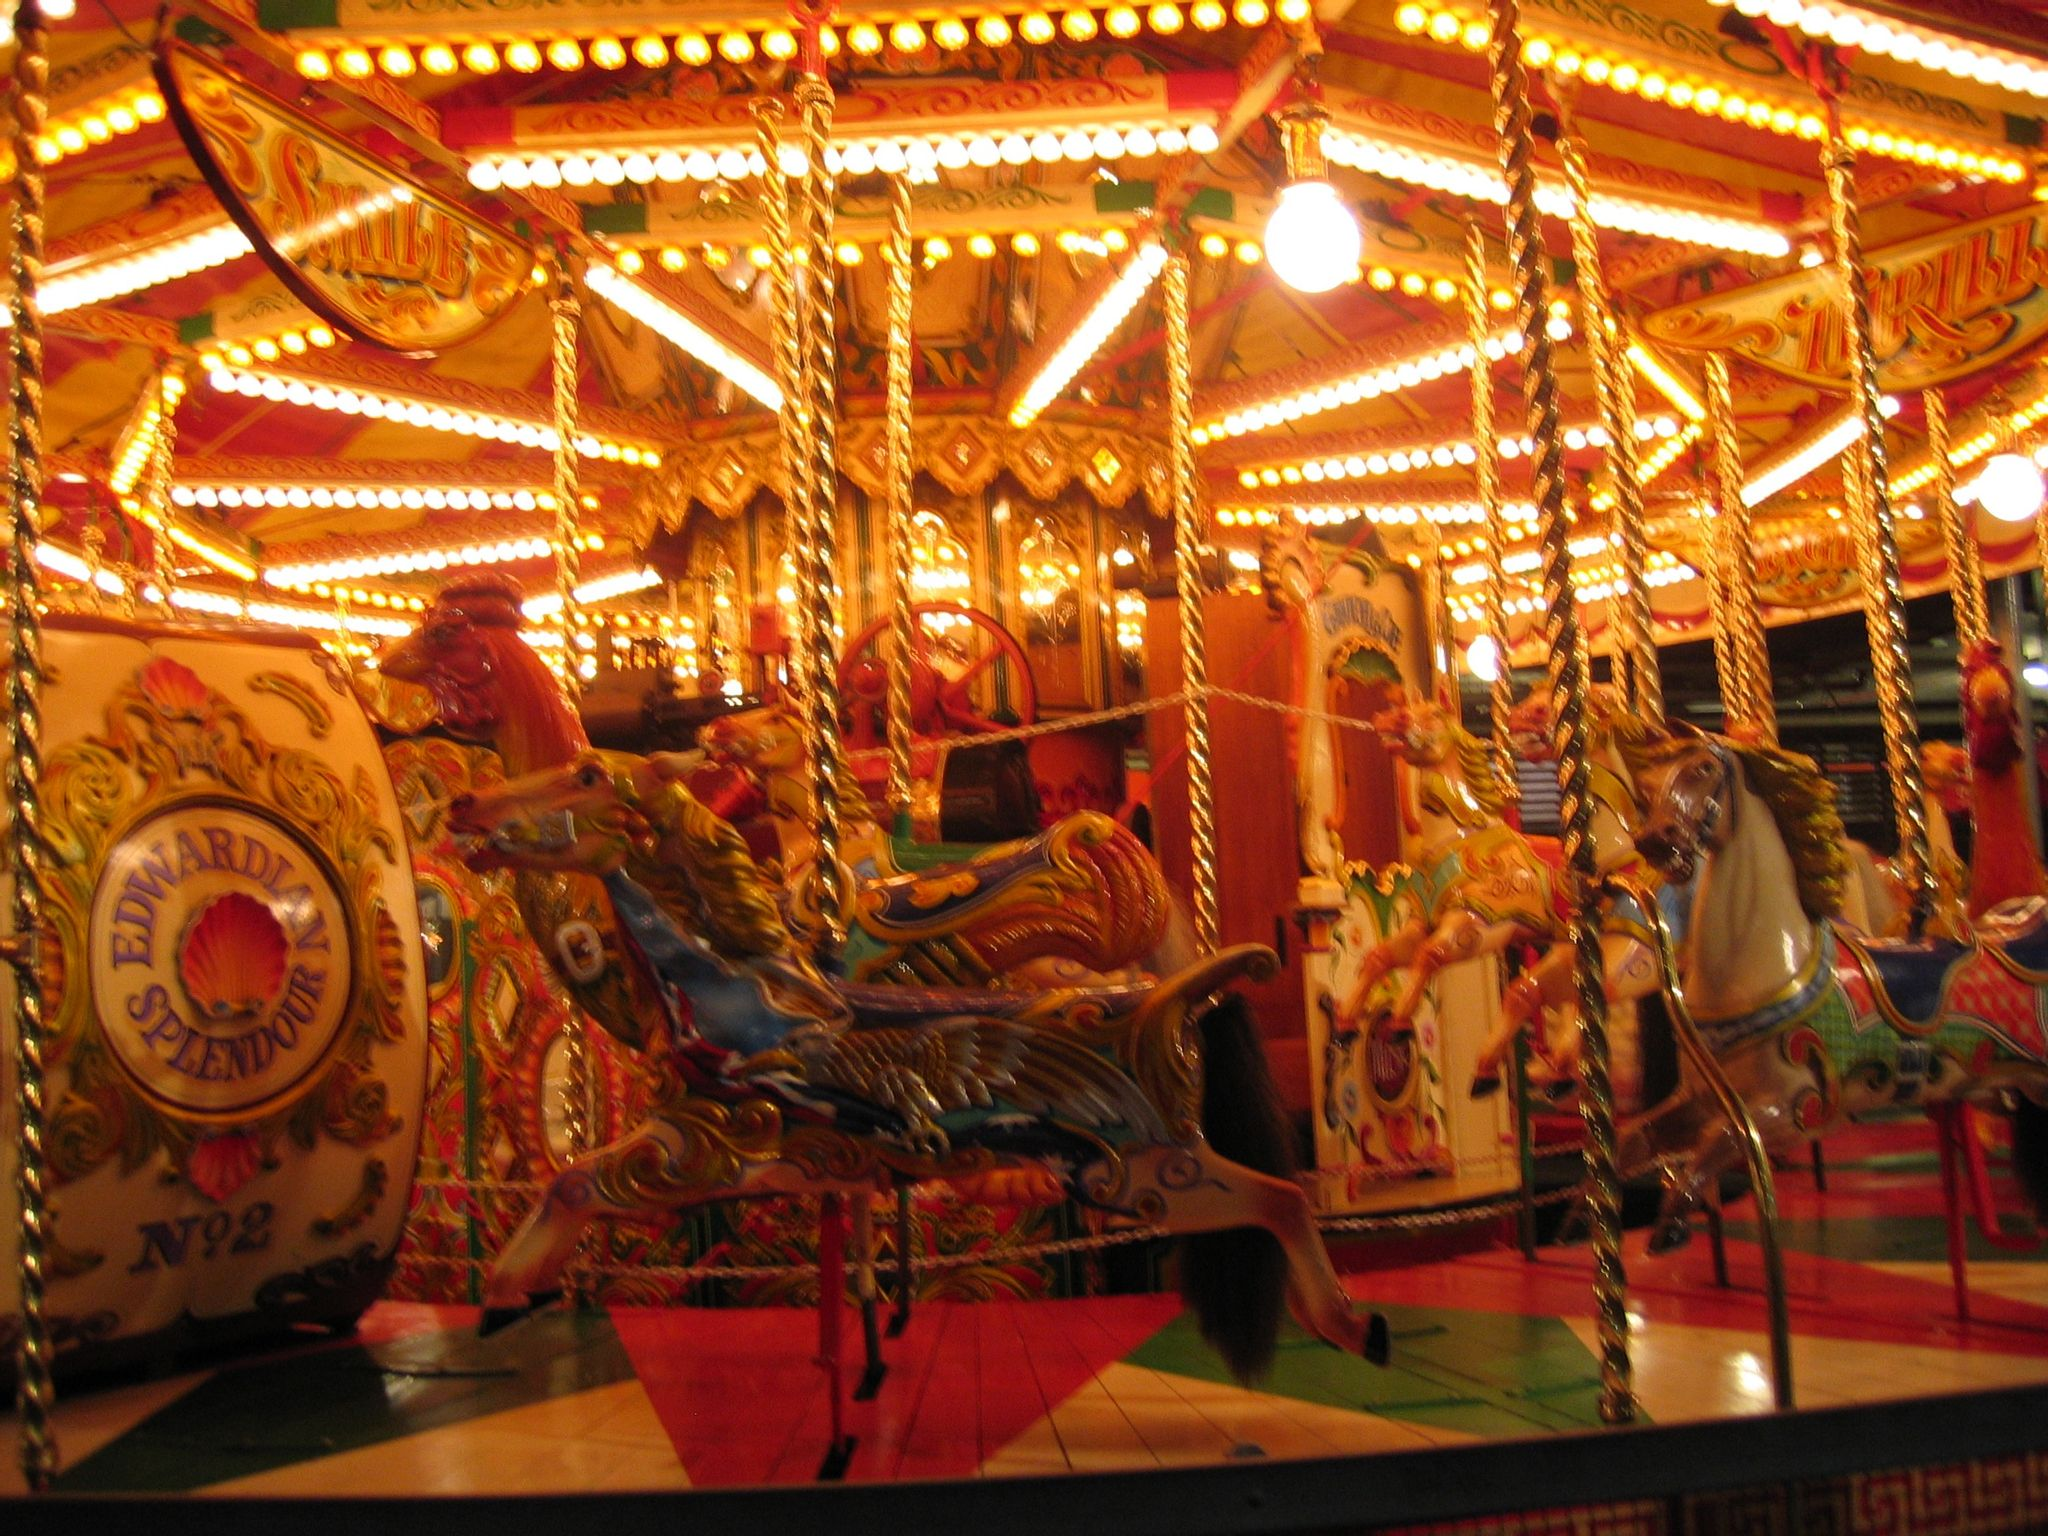 A photo of a very gaudy merry-go-round.